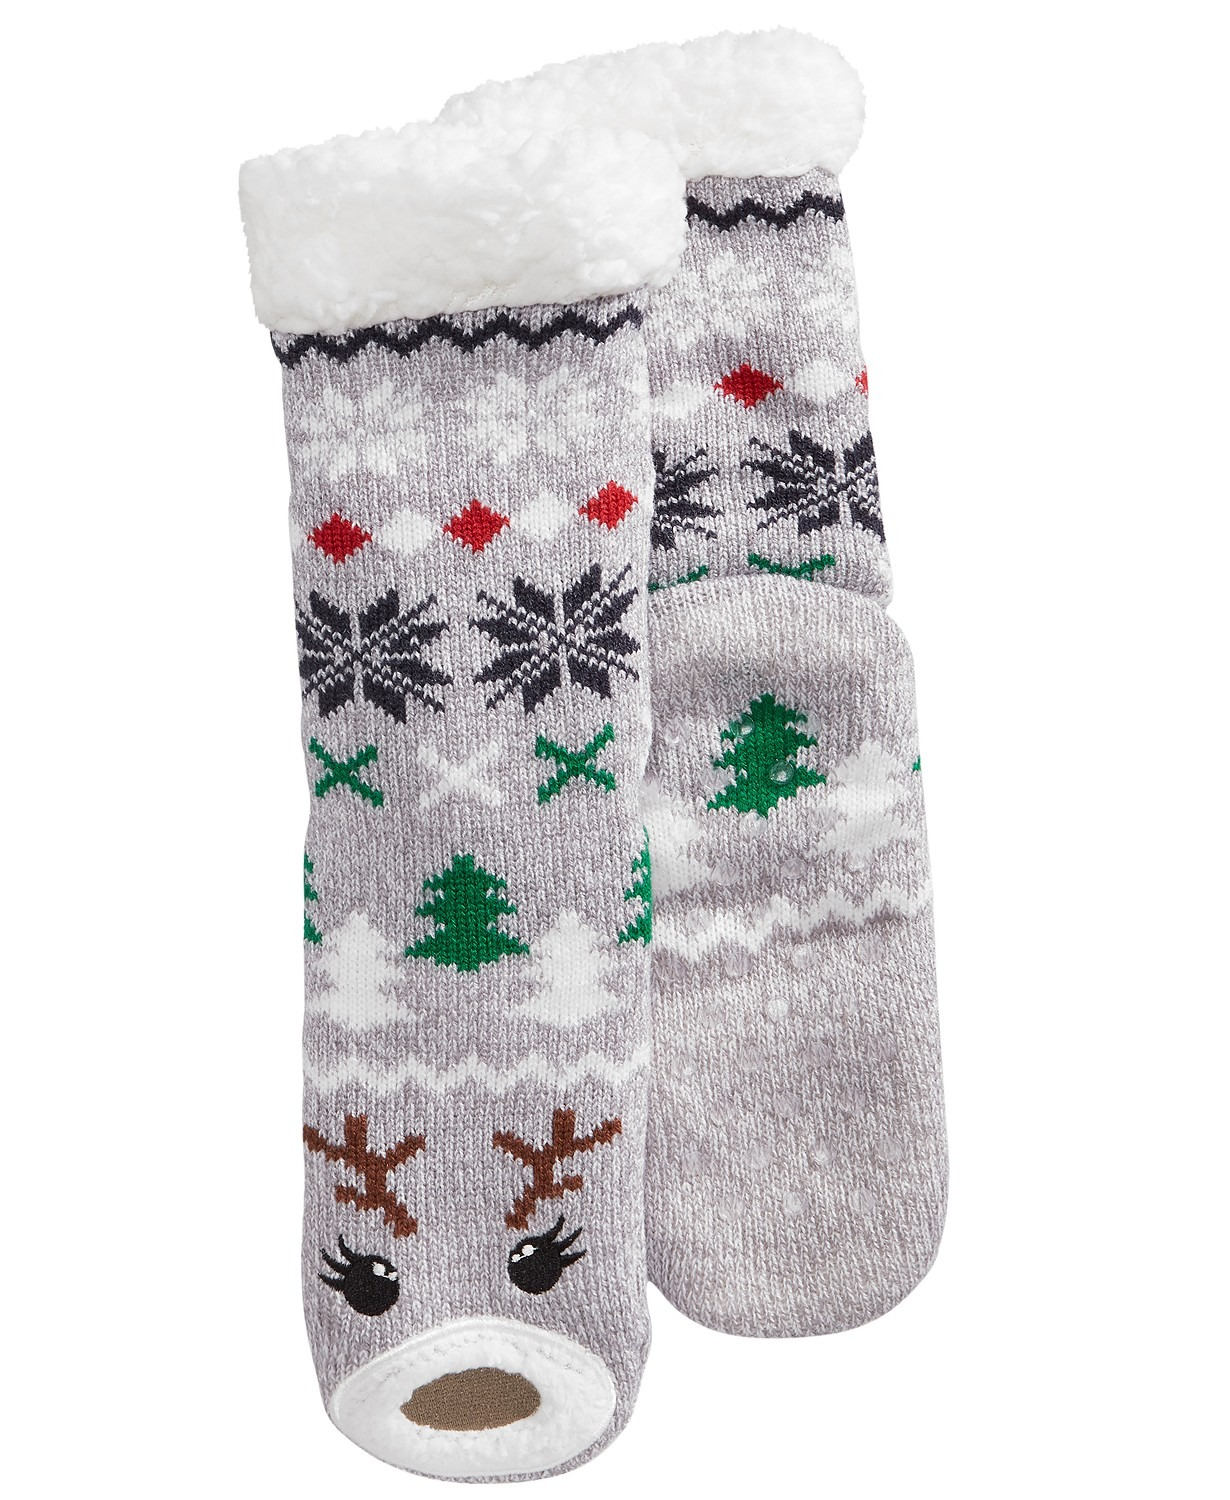 Charter-Club-NEW-Women-039-s-Holiday-Christmas-Sherpa-Fleece-Gripper-Slipper-Socks